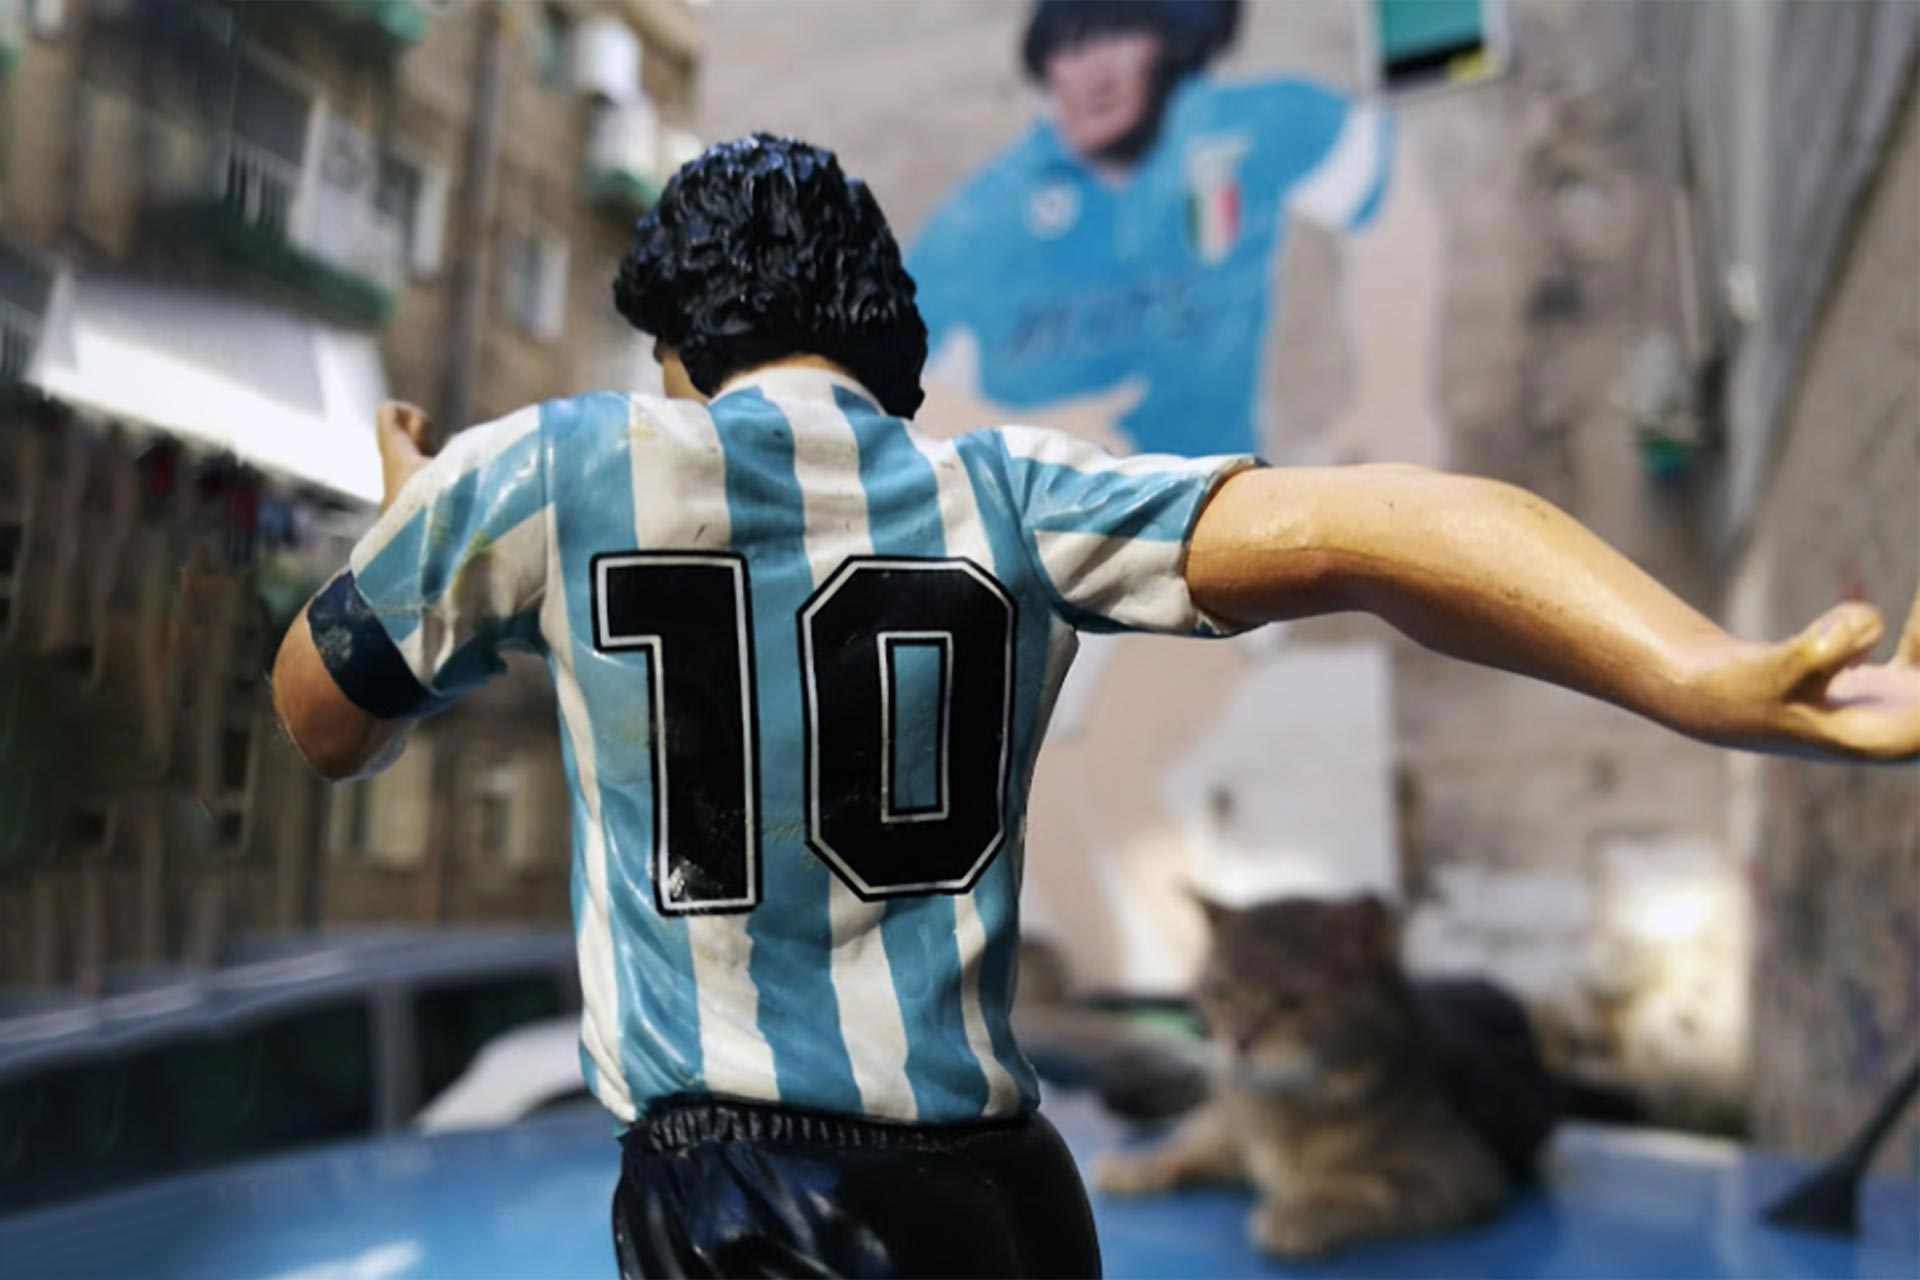 Naples Maradona mural and action-figure